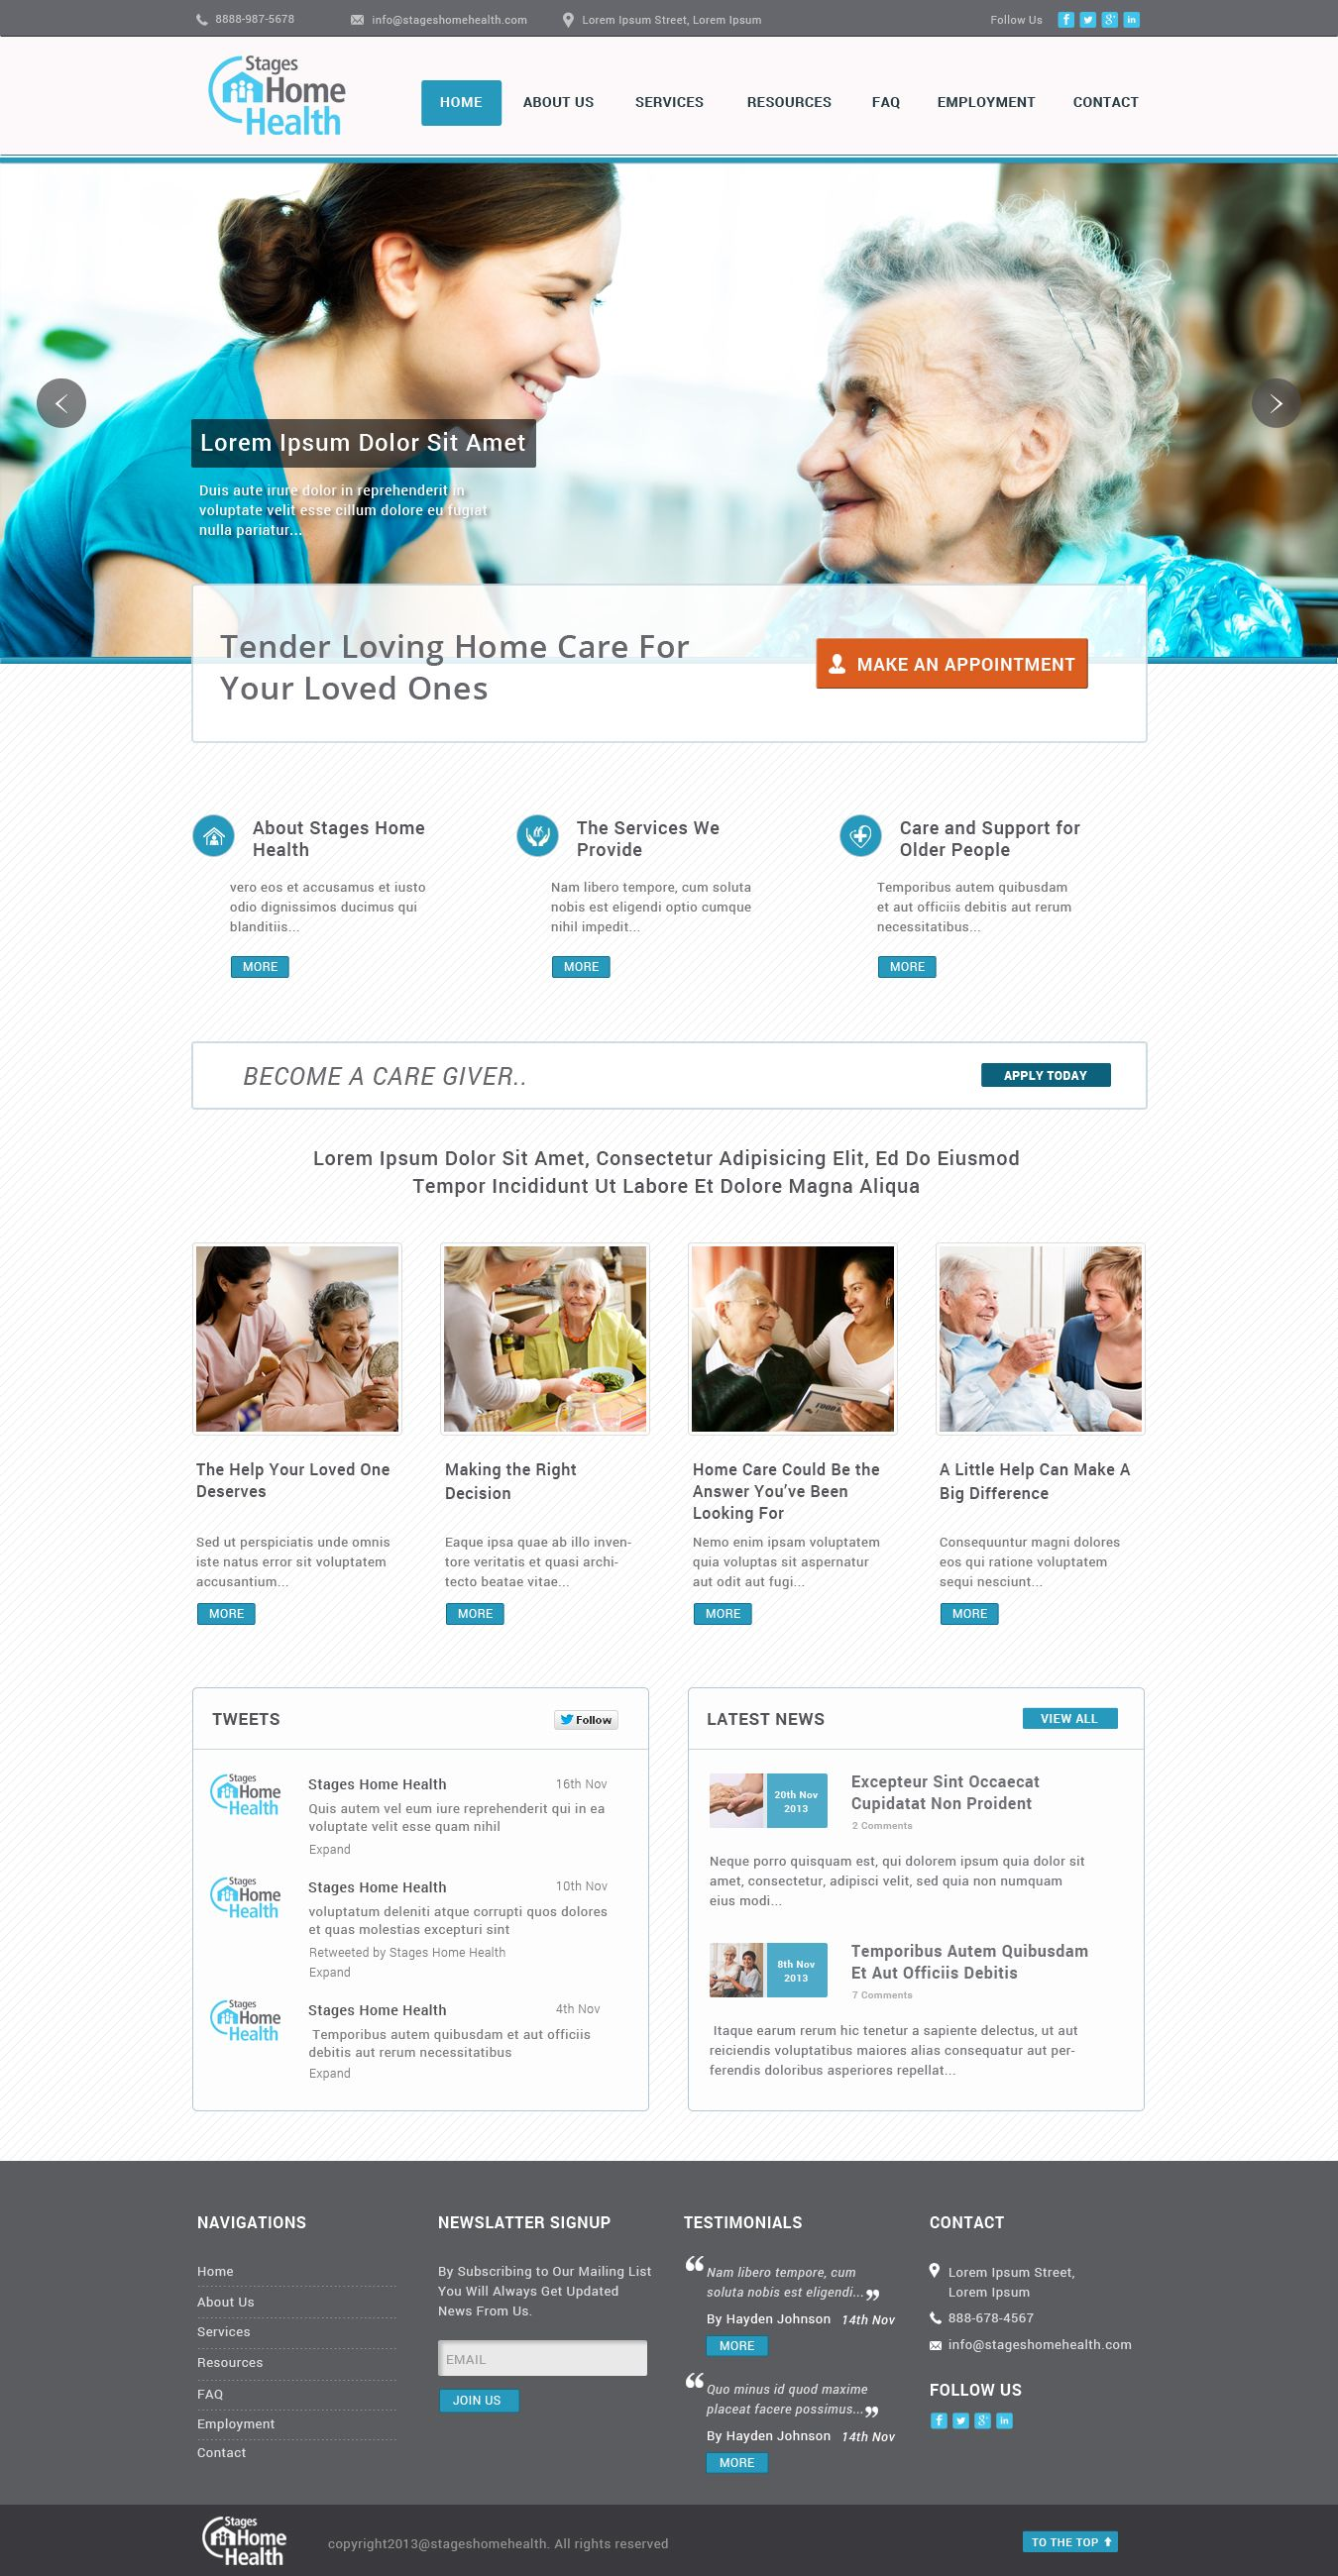 Stages Home Health Website Design It S A Responsive Mobile